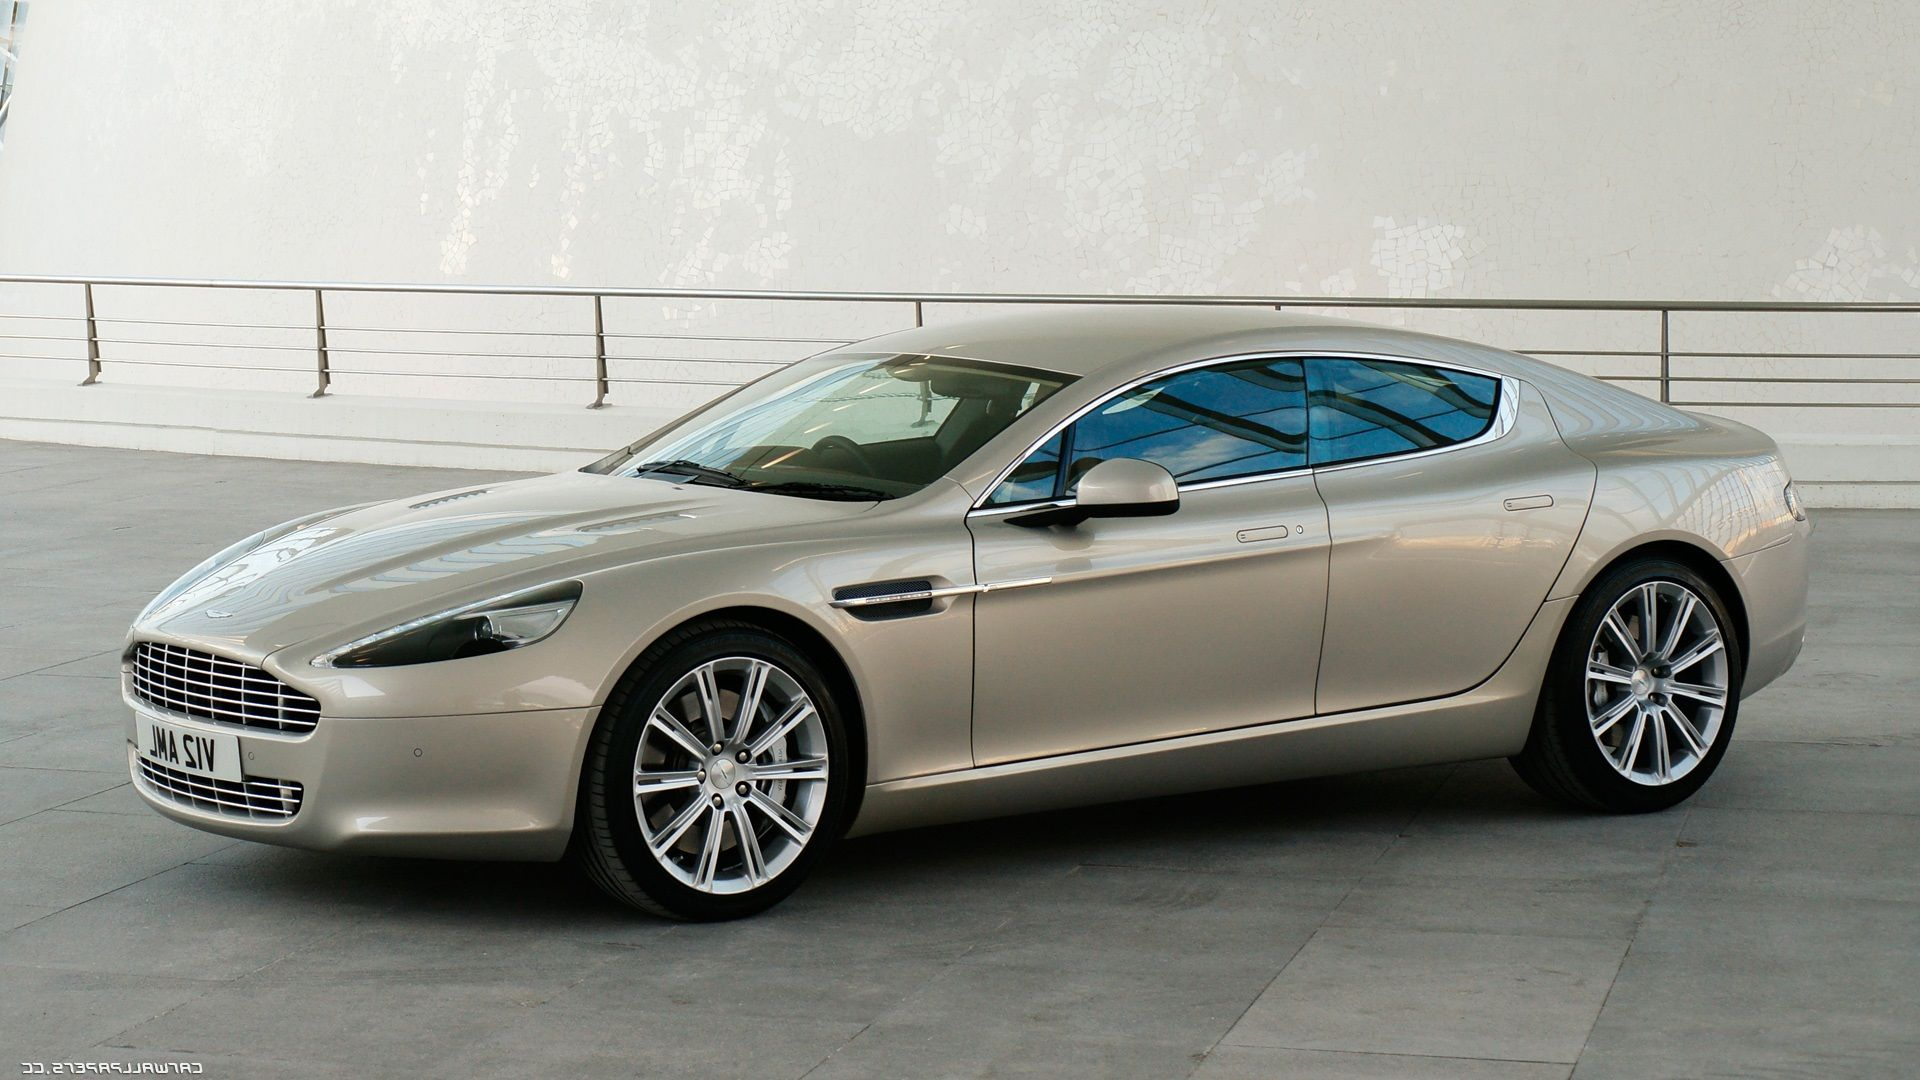 4 door aston martin vanquish 2013 | aston martin 2013 4 door ...